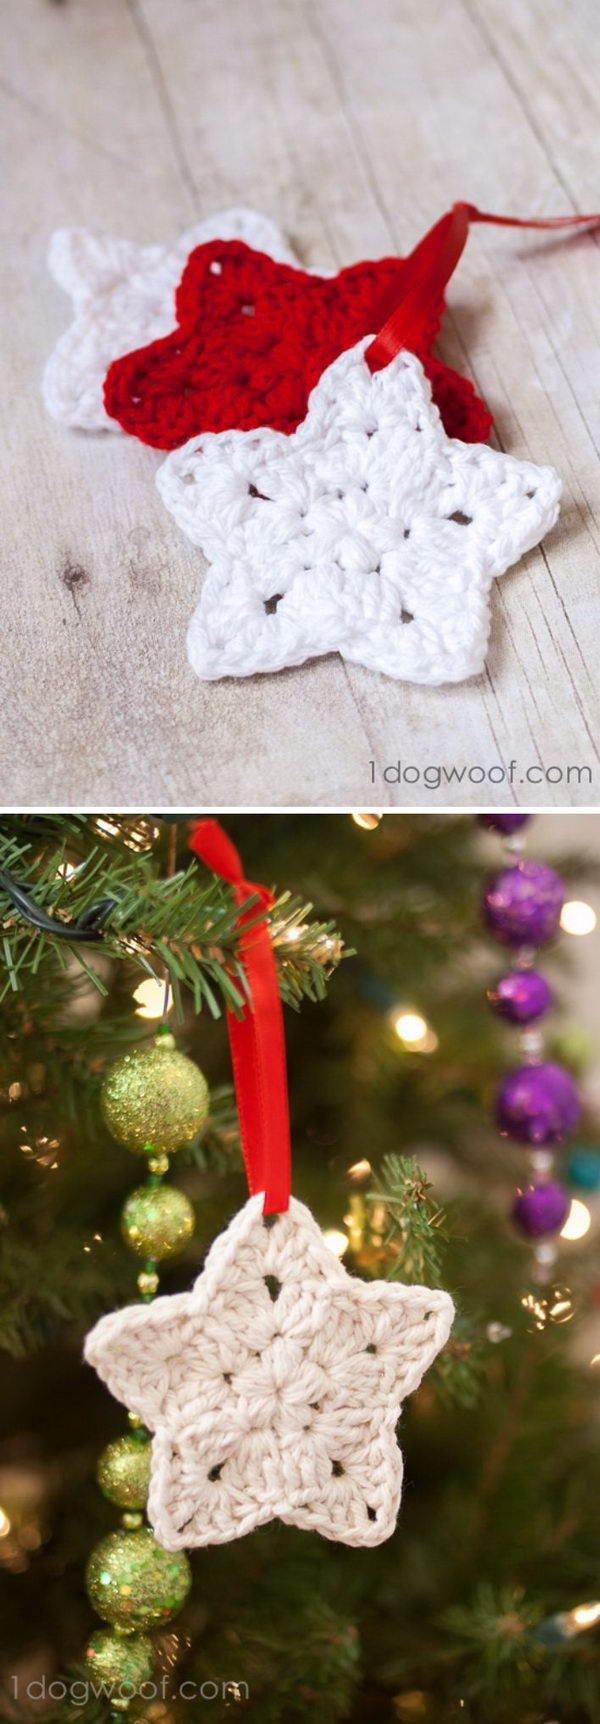 best projects i want to try images on pinterest home ideas